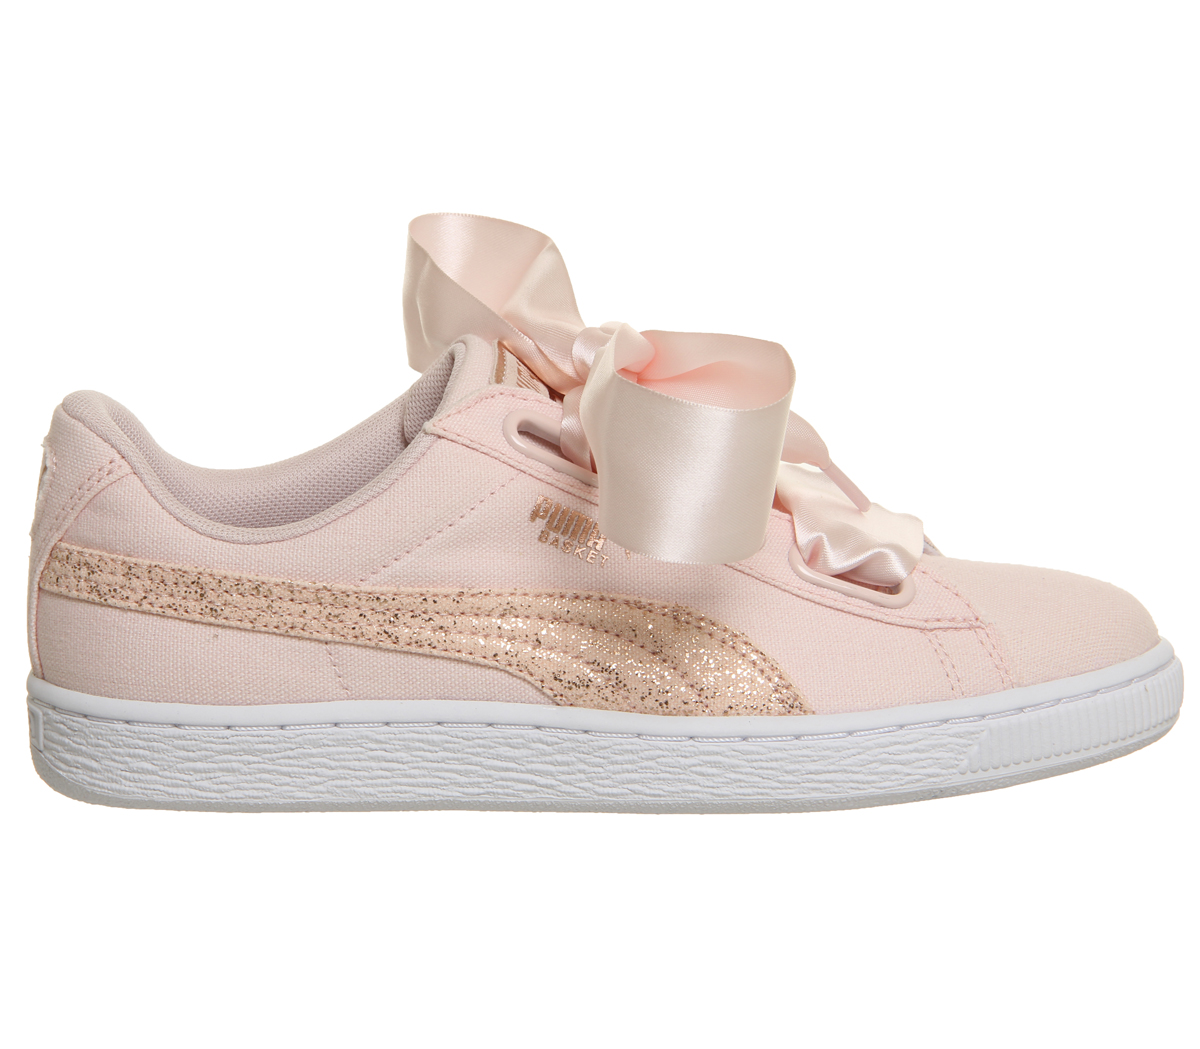 4745de5f687053 Sentinel Womens Puma Basket Heart Canvas Trainers Pearl Puma White Rose  Gold Trainers Sho